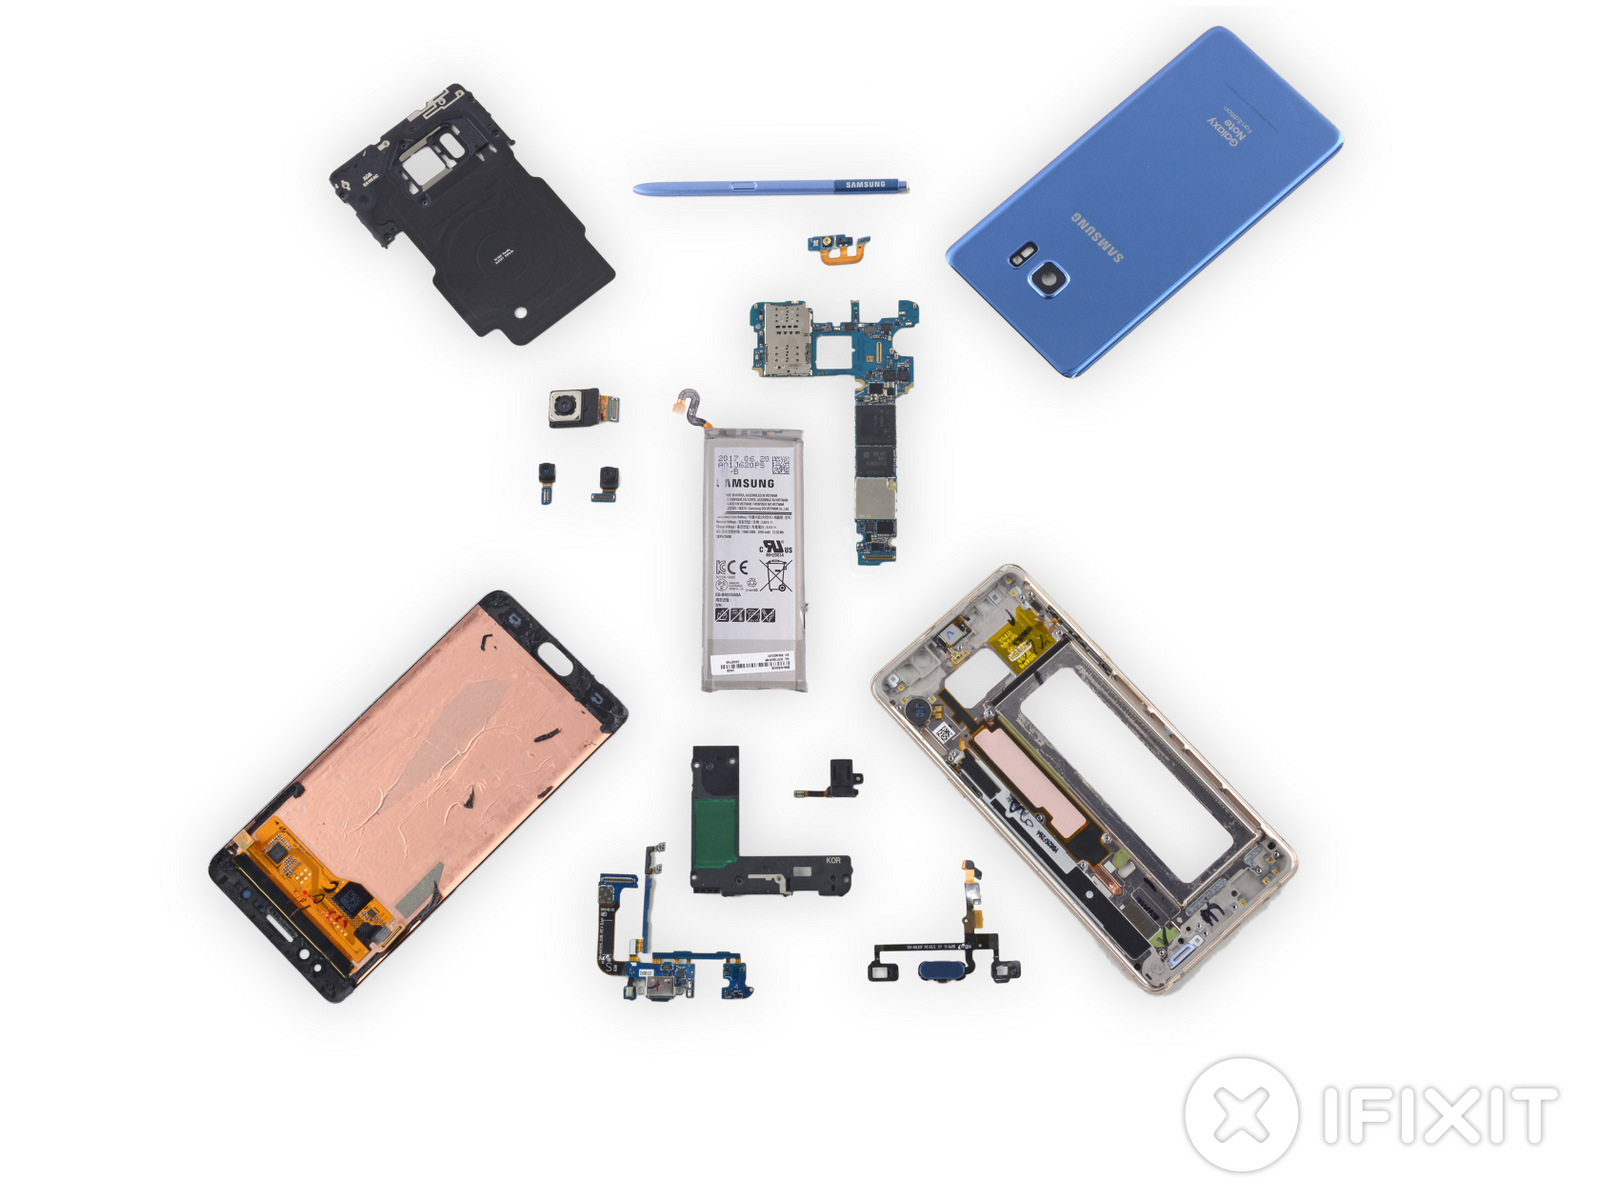 iFixit 拆開 Galaxy Note Fan Edition 來看看變小的電池